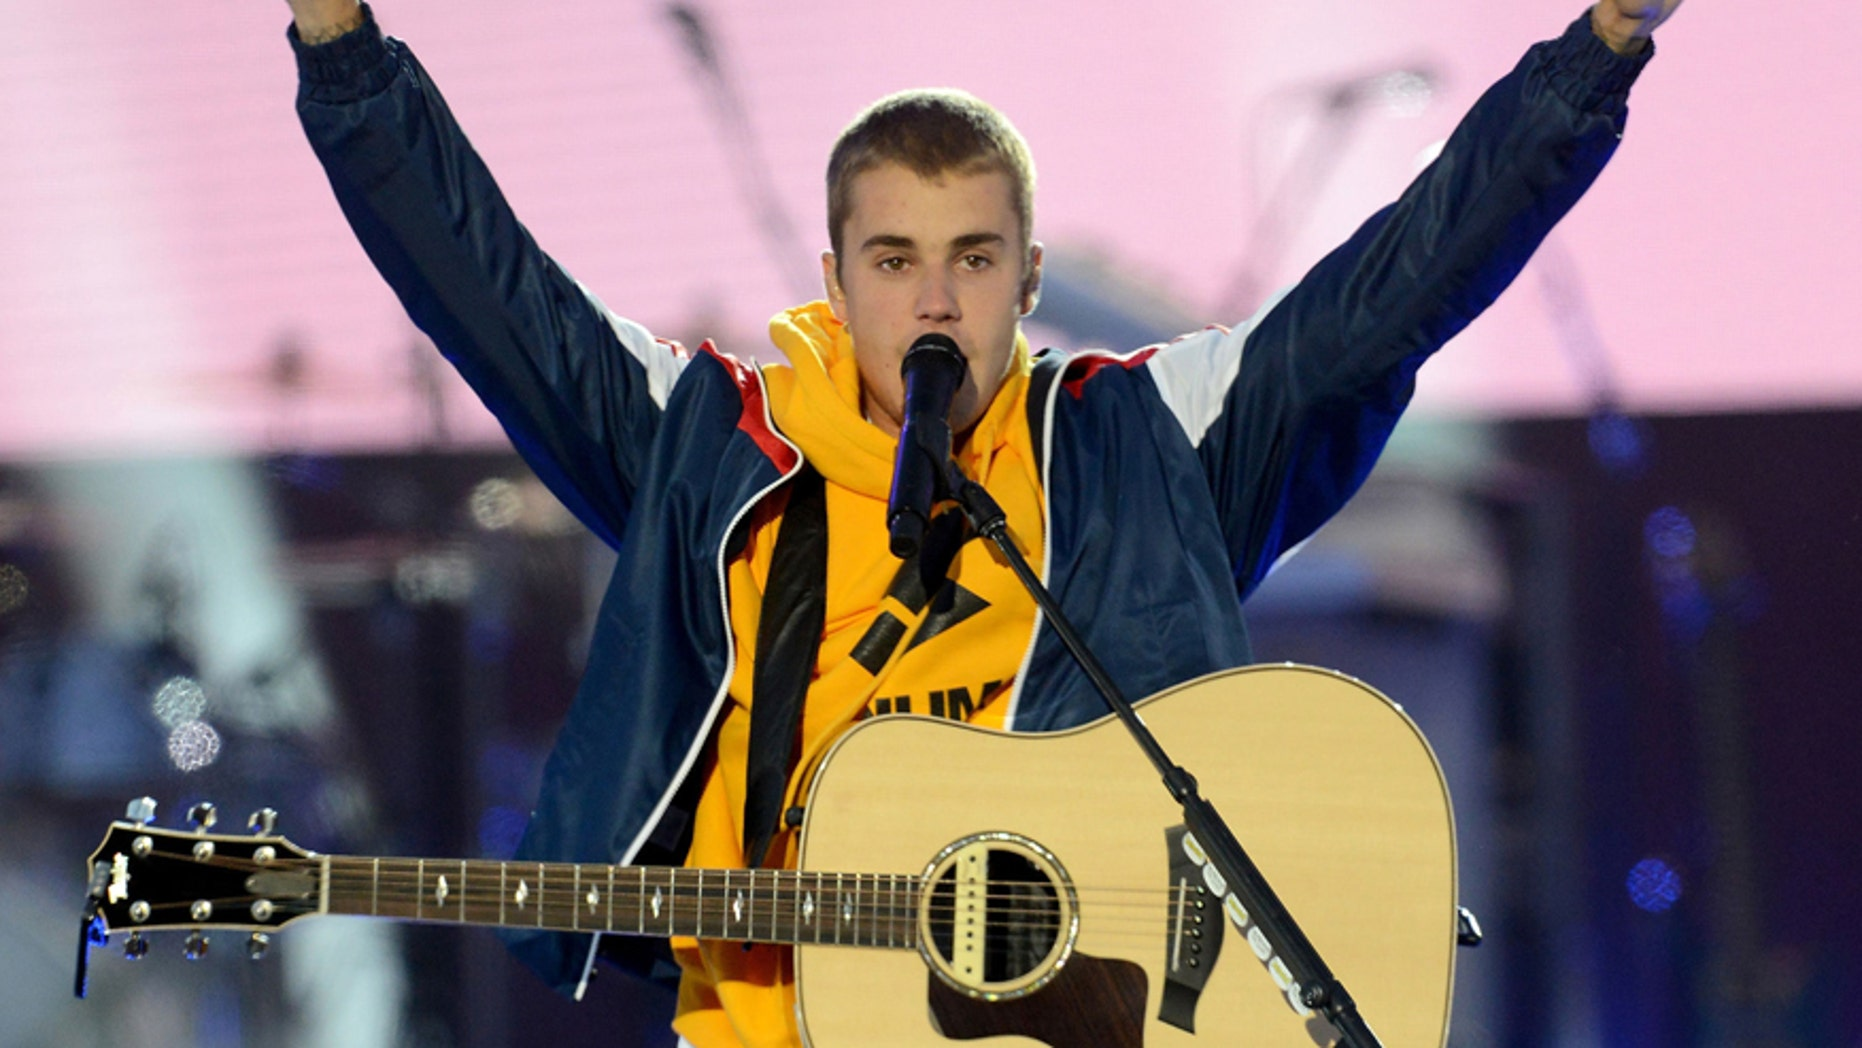 In this Sunday, June 4, 2017, handout photo provided by Dave Hogan for One Love Manchester, singer Justin Bieber performs at the One Love Manchester tribute concert in Manchester, north western England, Sunday, June 4, 2017.